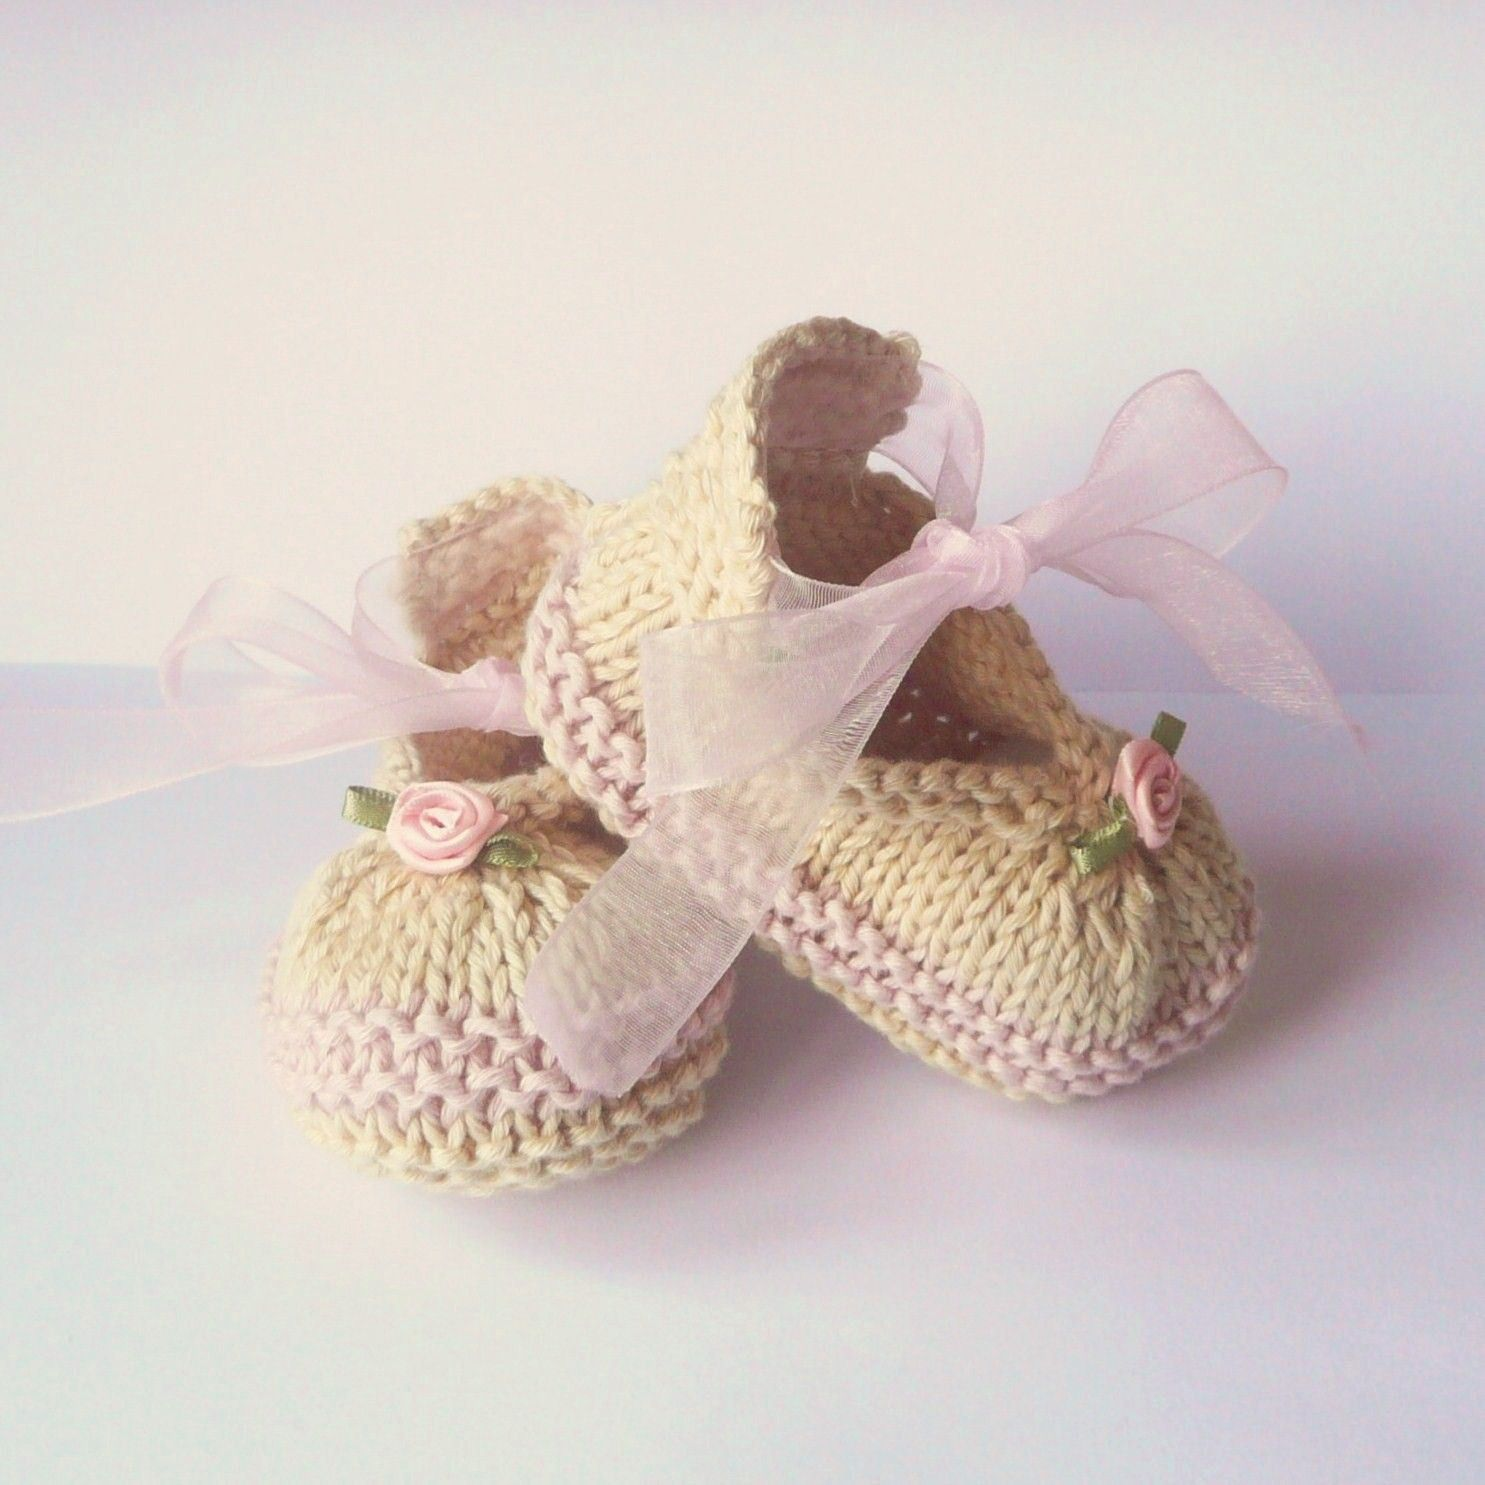 Baby Booties PATTERN Posh Party Baby Shoes INSTANT by ceradka $4 50